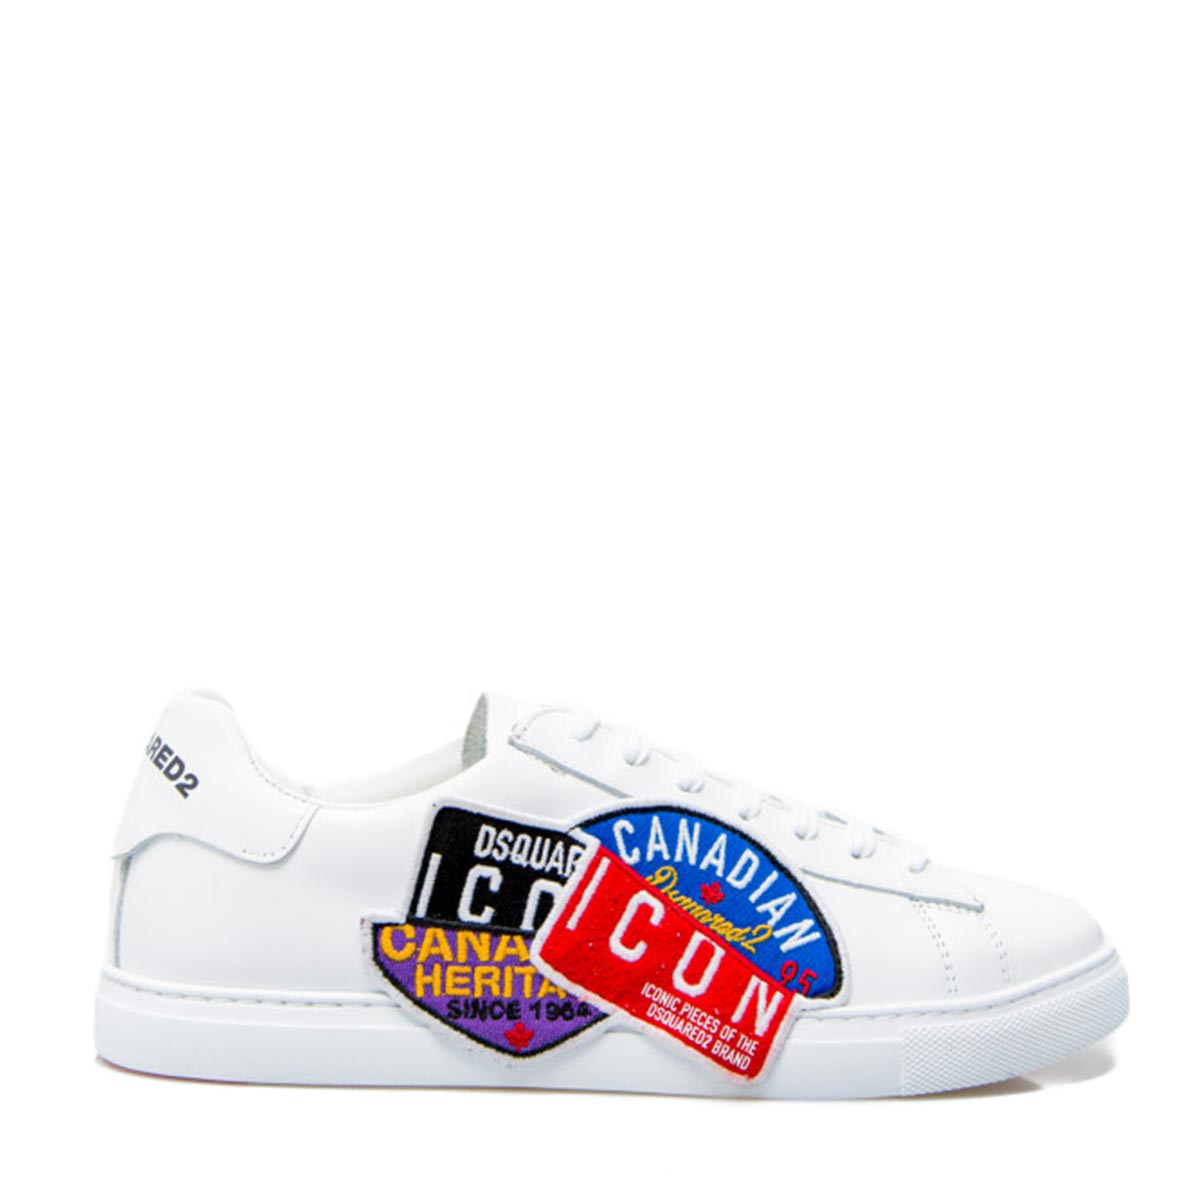 Dsquared2 Leathers ICON SNEAKERS BIANCHE UOMO